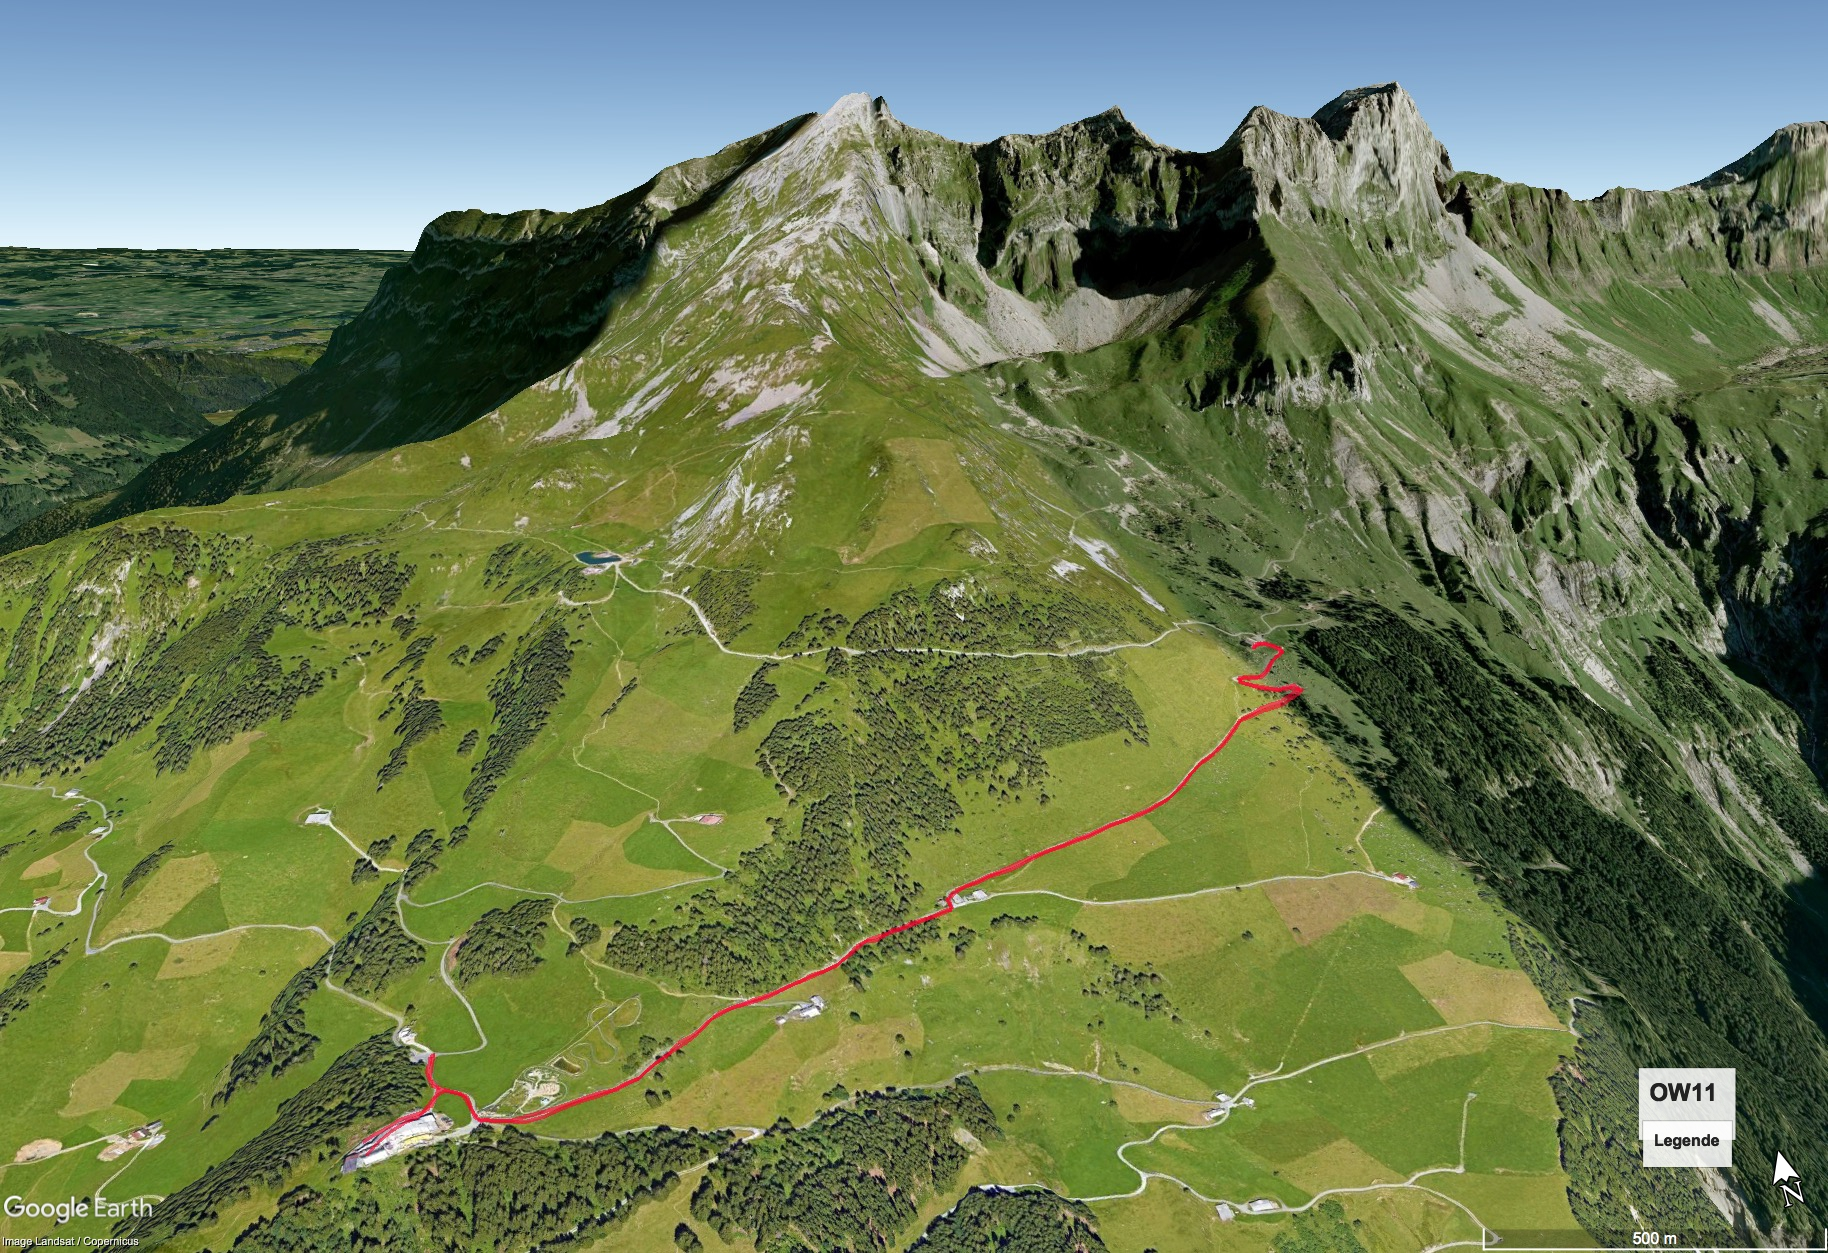 Google Earth Karte mit Wegstrecke